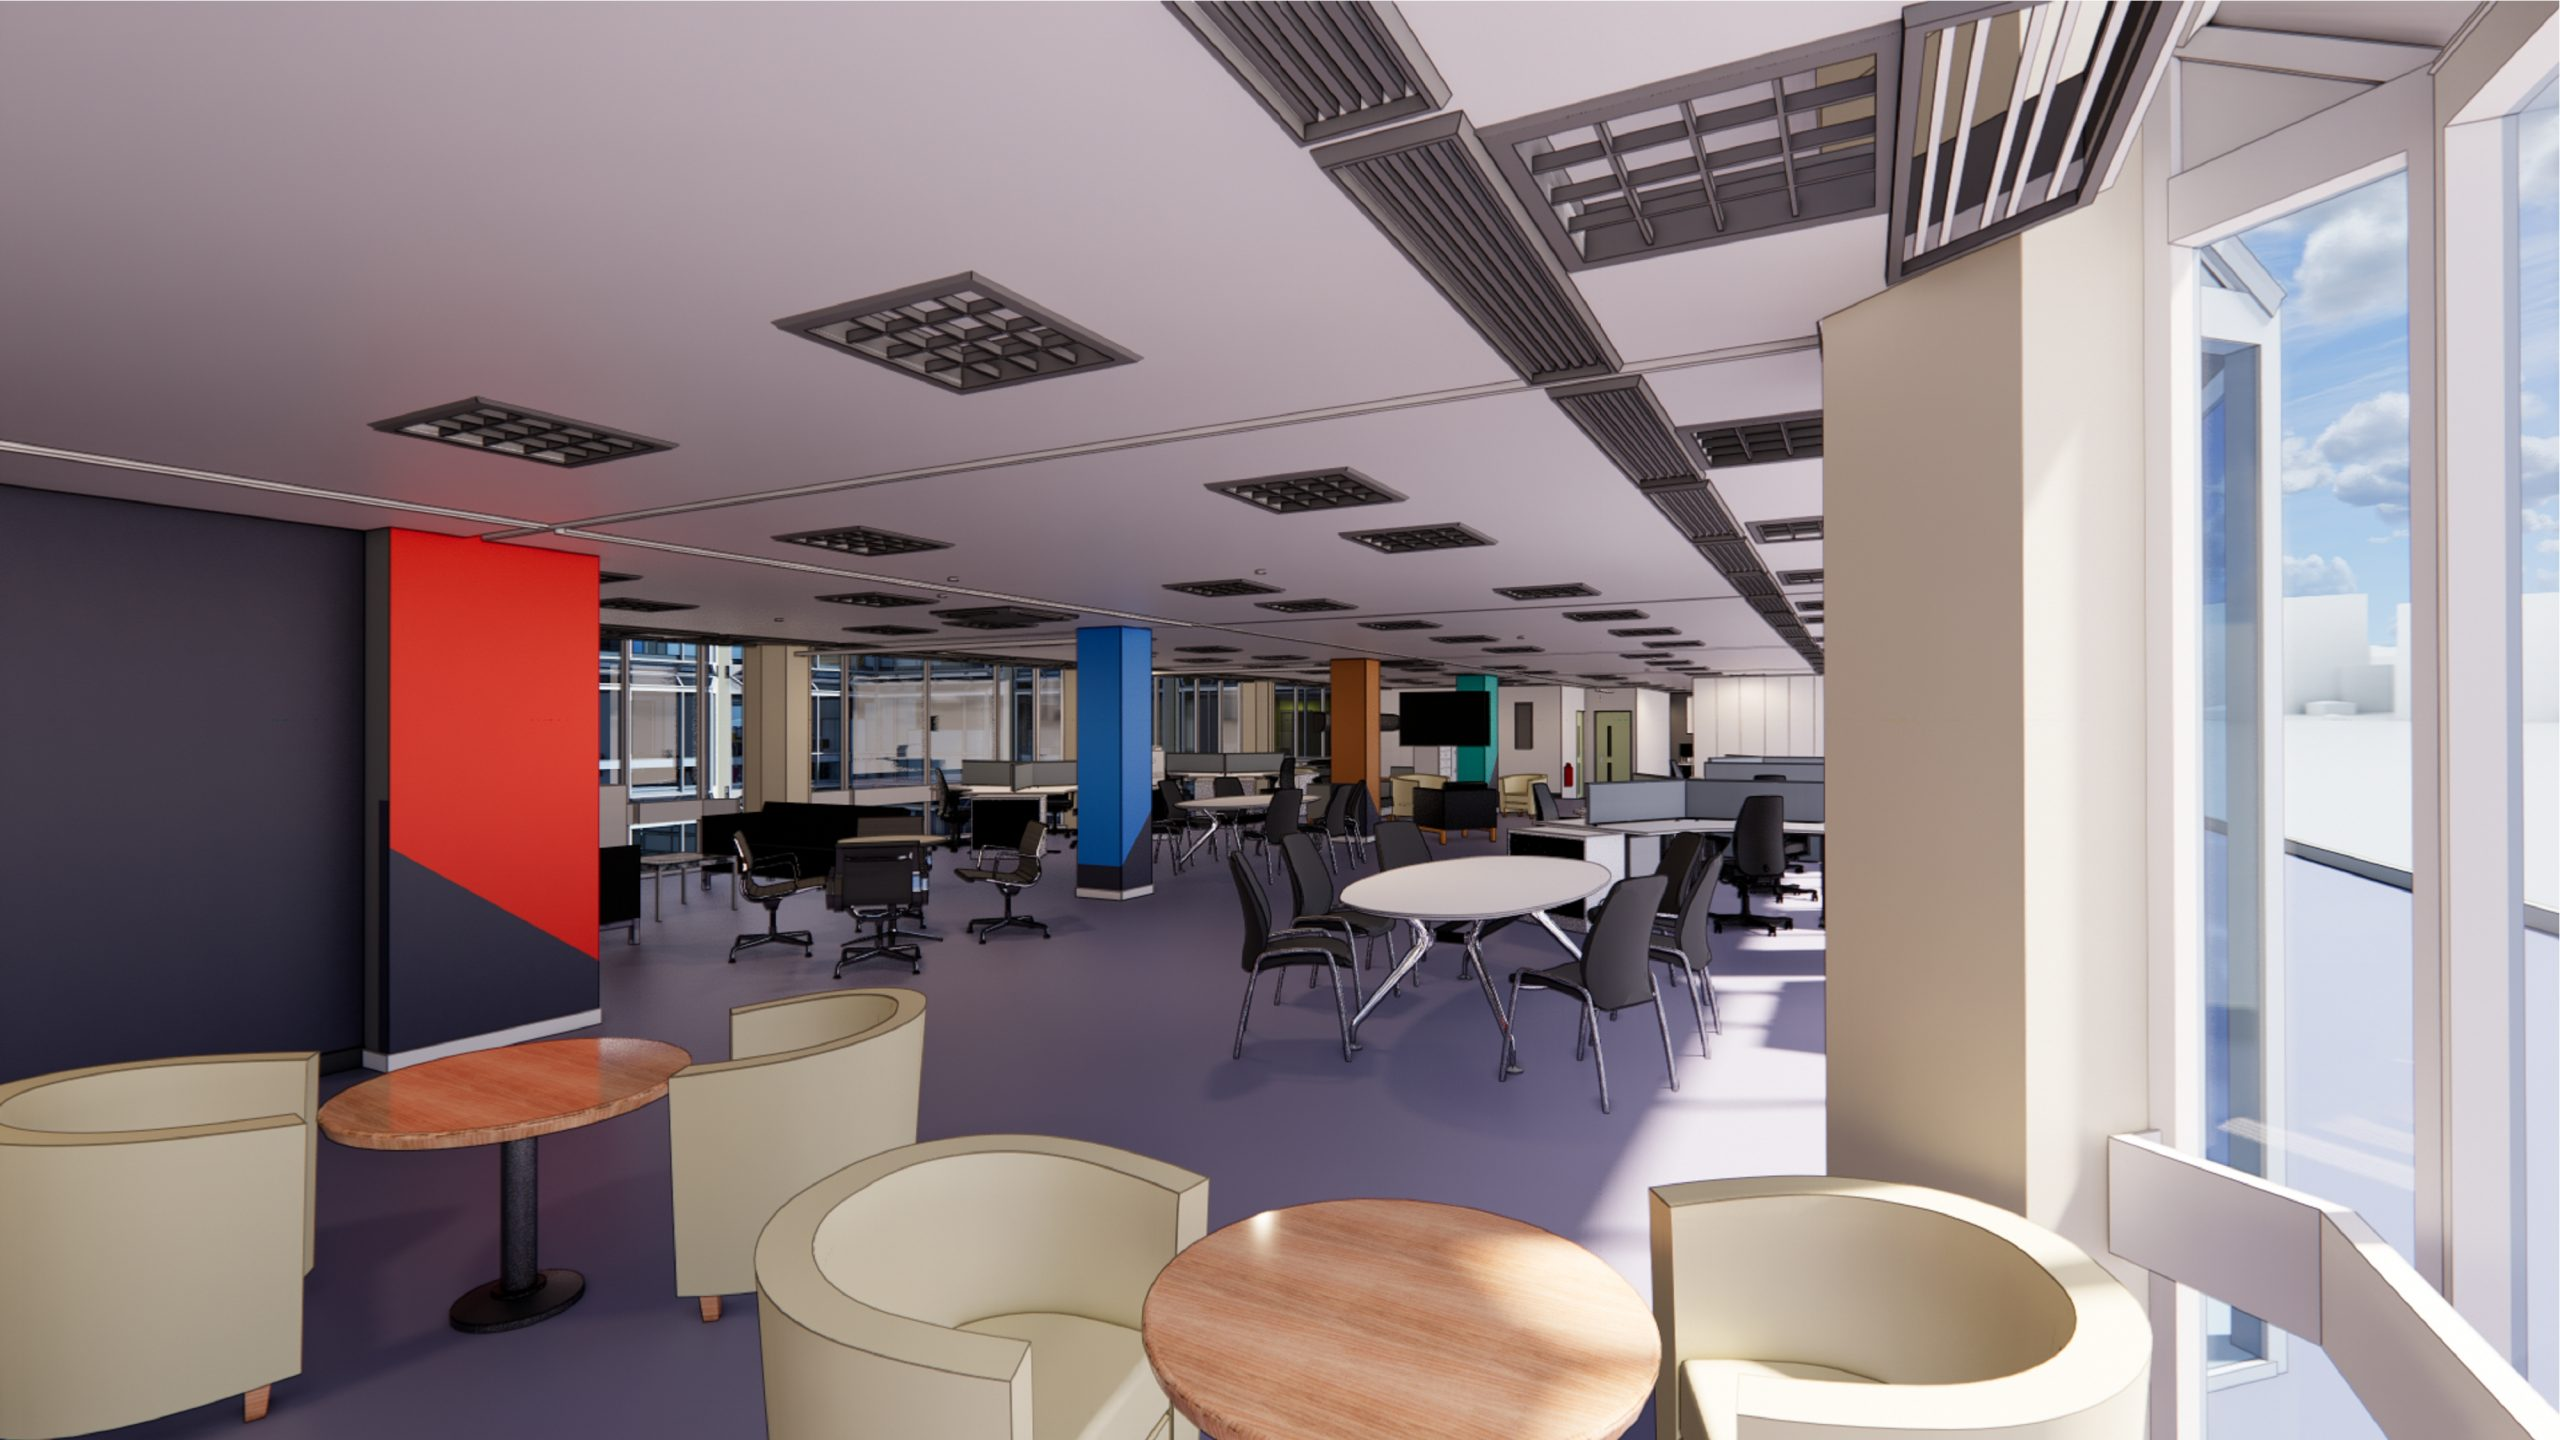 John Lewis Headquarters: 171 Victoria Street rendering with office furniture